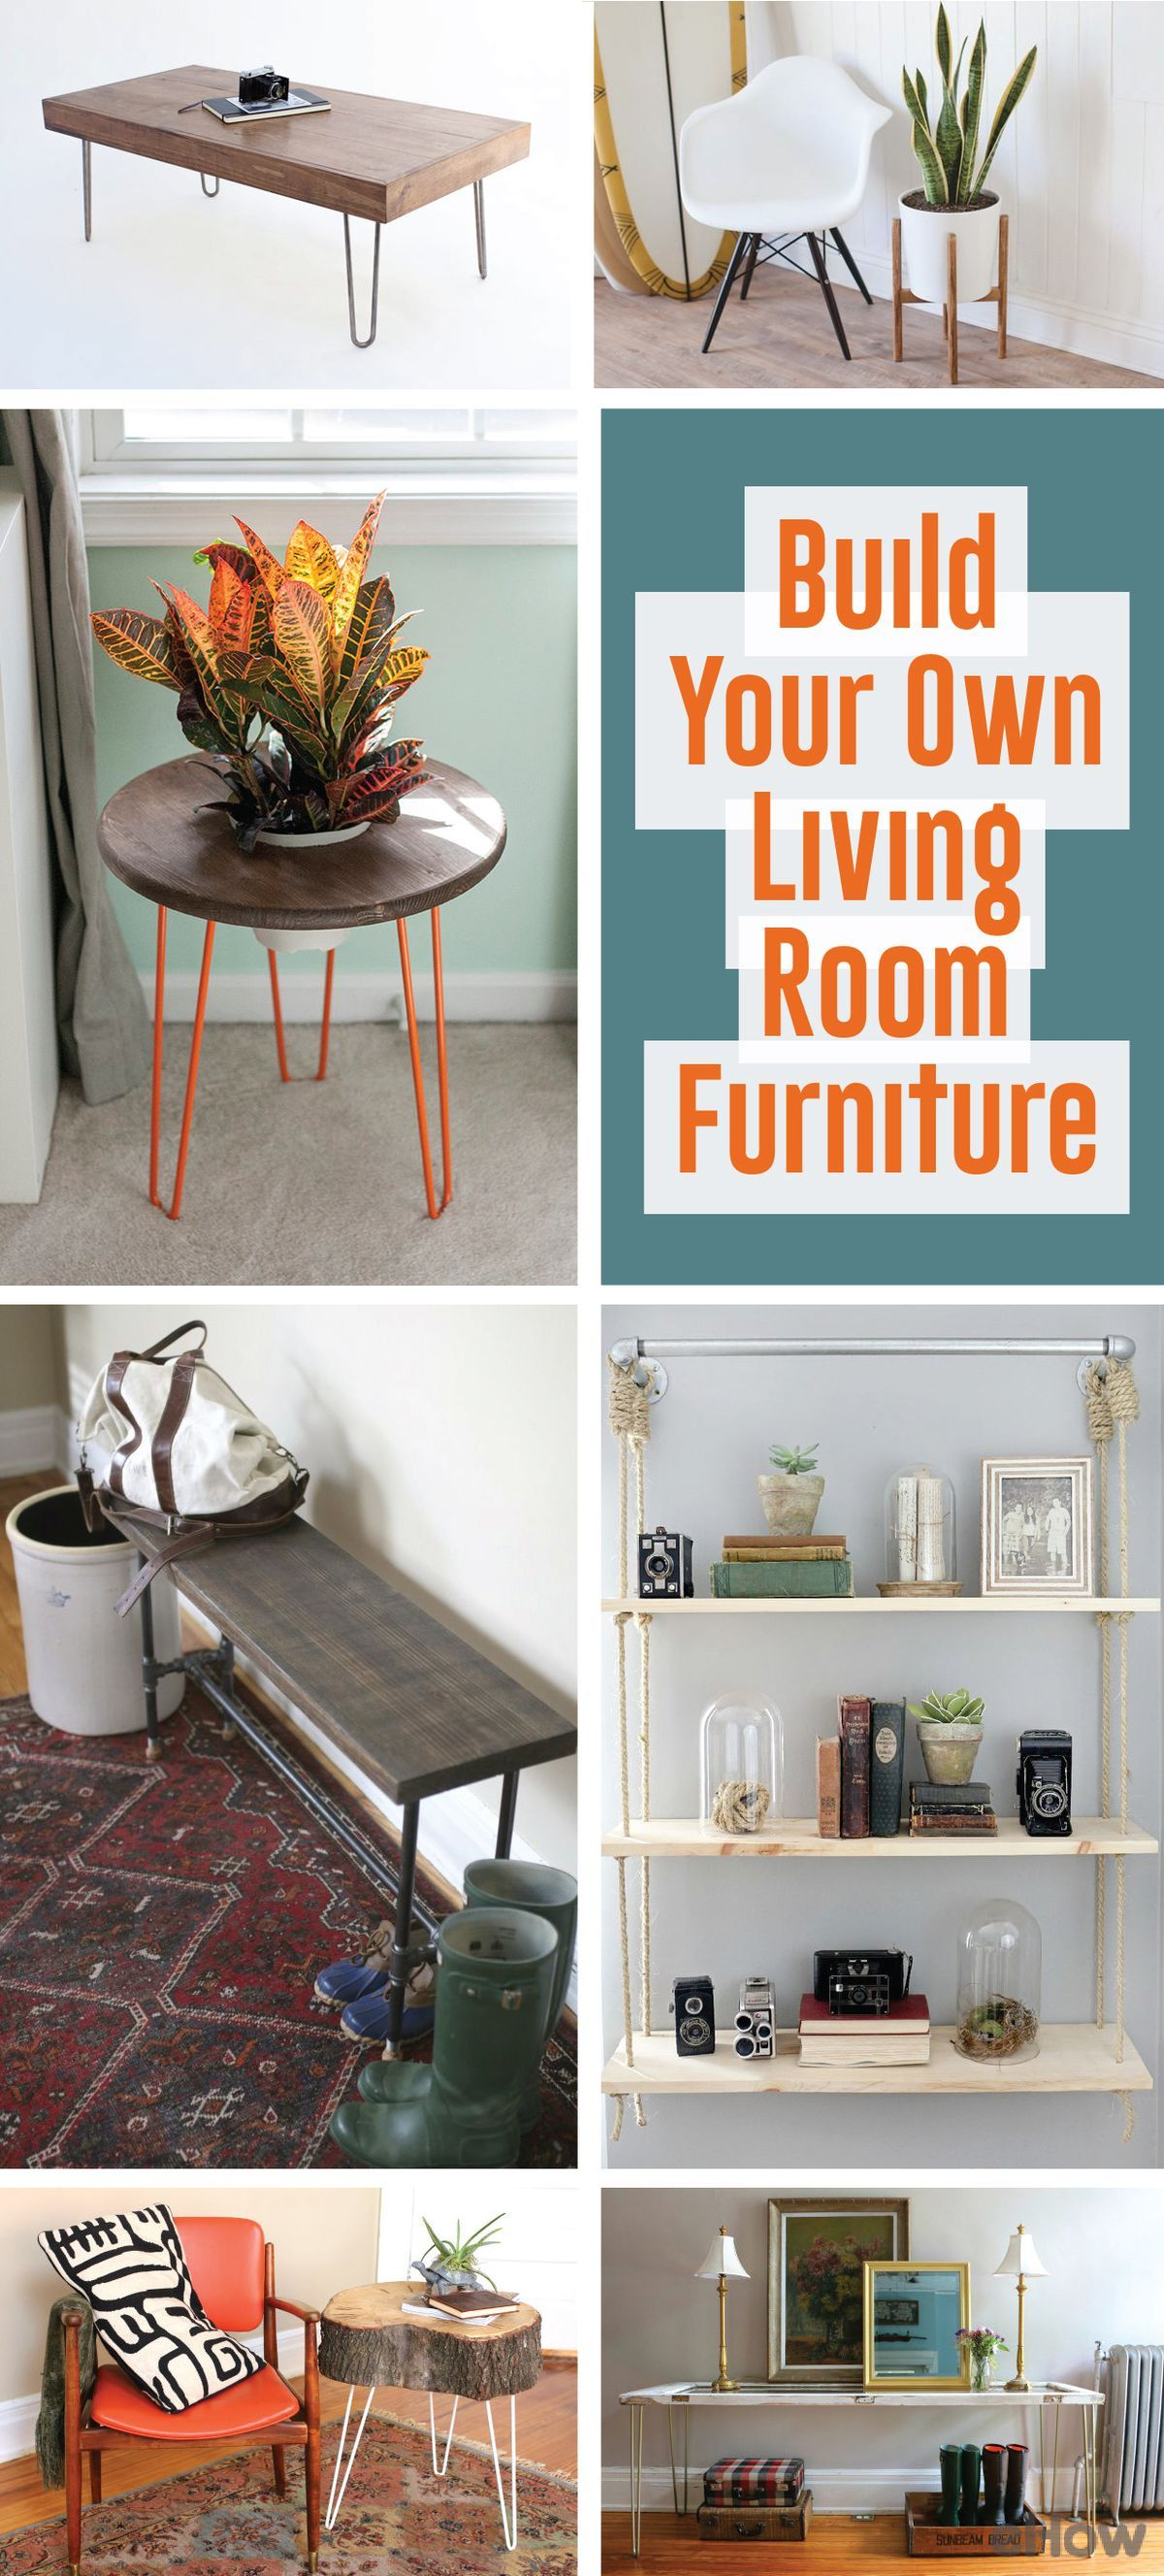 Make Your Own Living Room Furniture